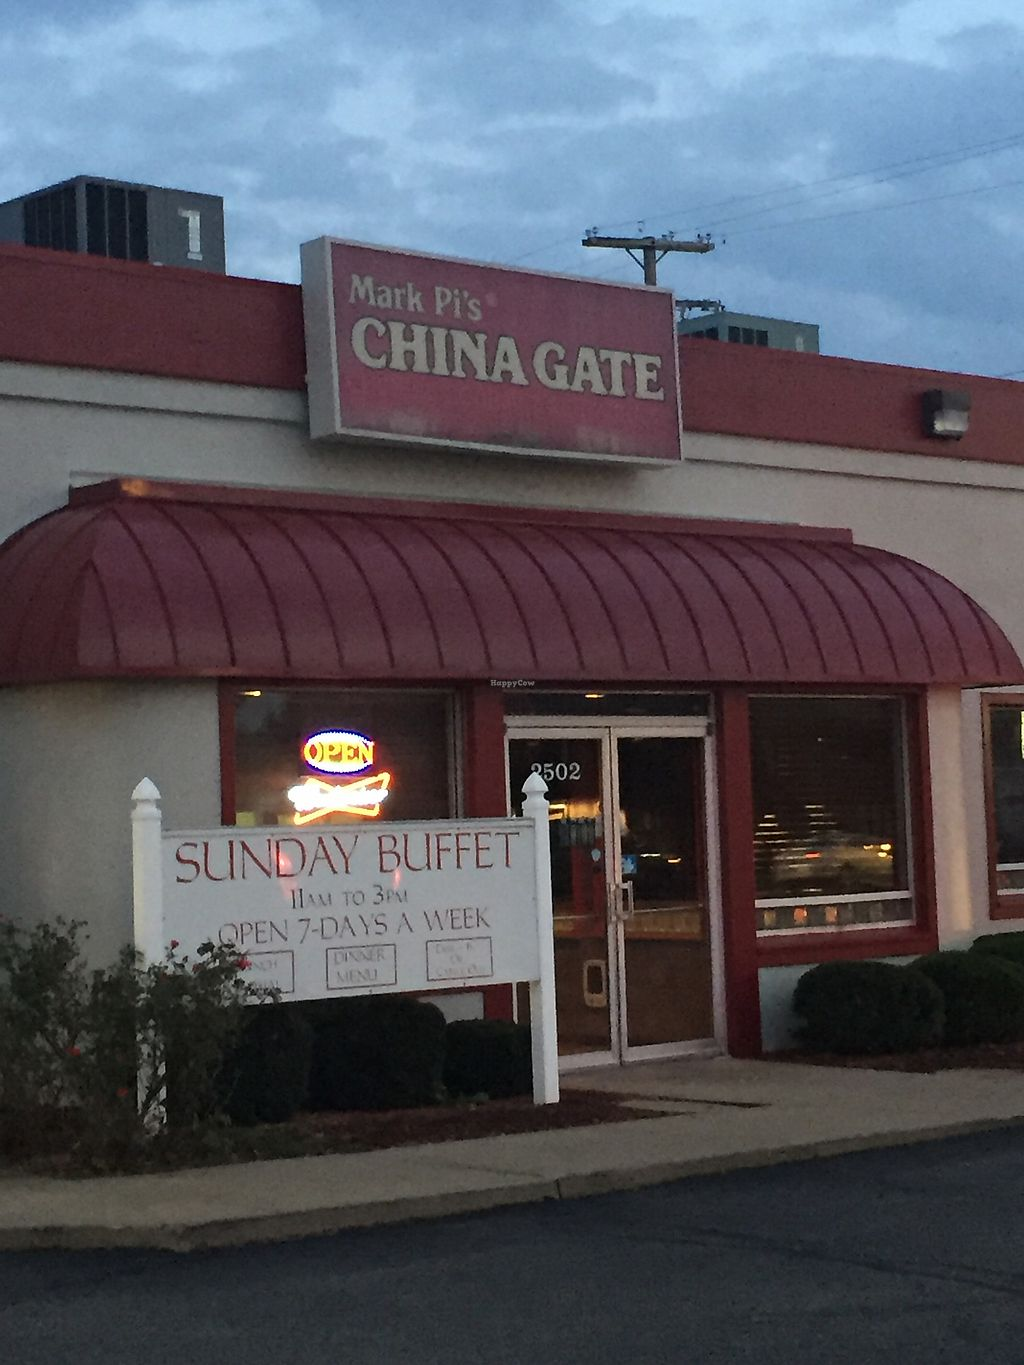 """Photo of Mark Pi's China Gate  by <a href=""""/members/profile/KristenRenee"""">KristenRenee</a> <br/>Front  <br/> October 25, 2017  - <a href='/contact/abuse/image/70396/318899'>Report</a>"""